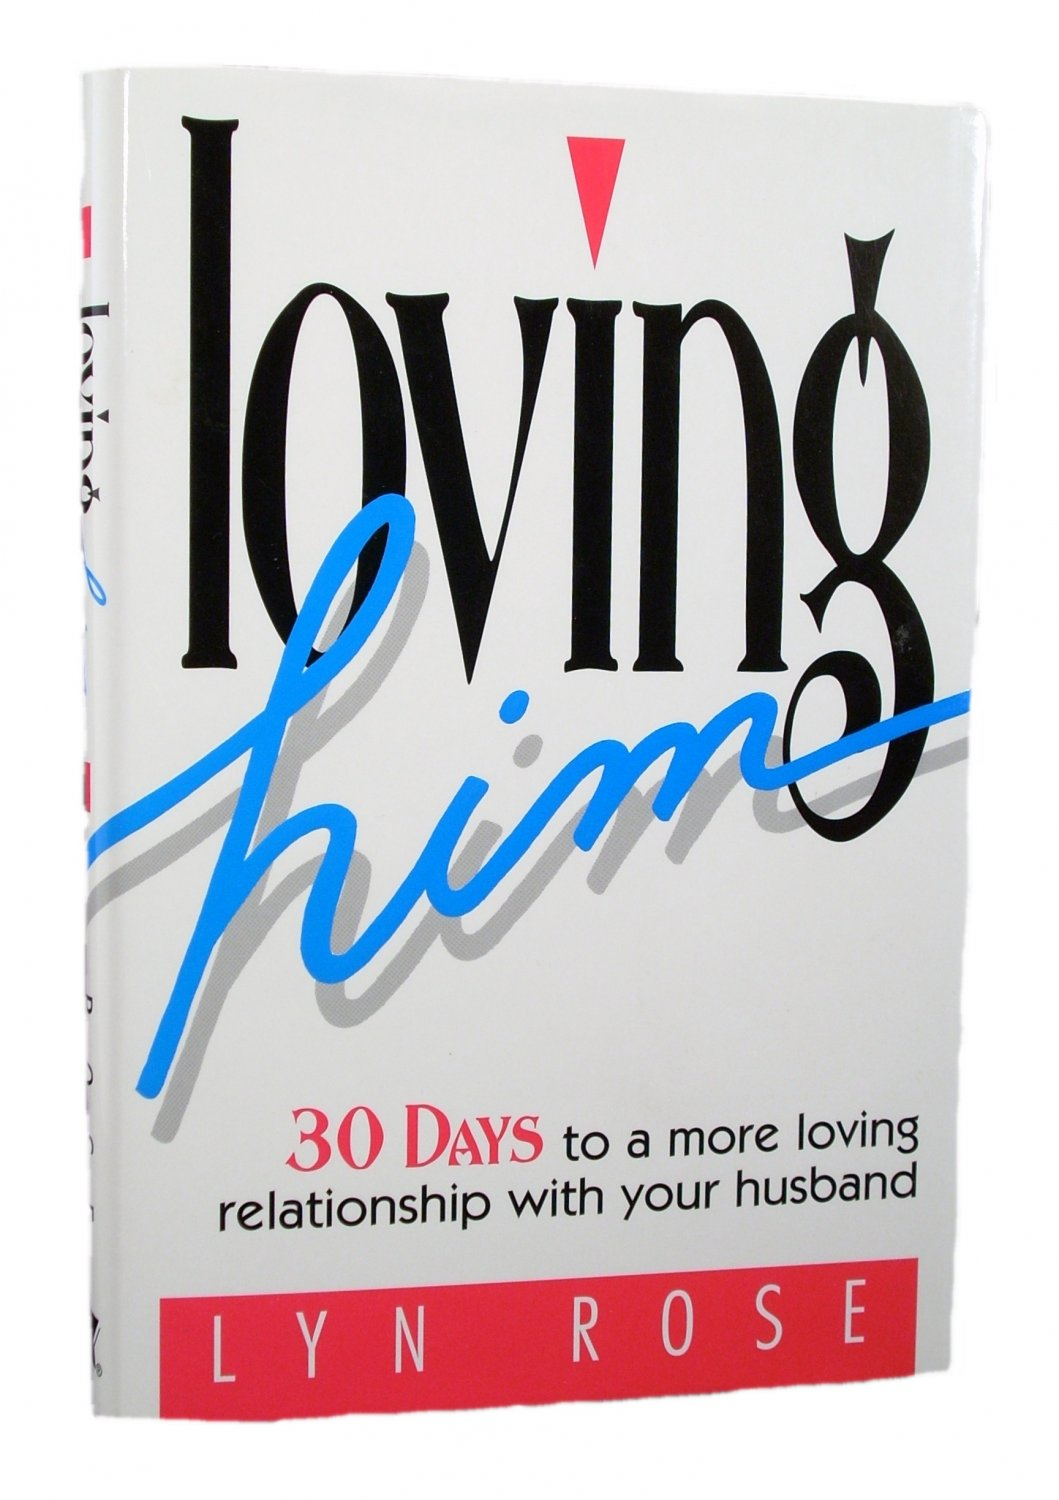 Loving Him: 30 Days To A More Loving Relationship With Your Husband by Lyn Rose Hardcover 1996